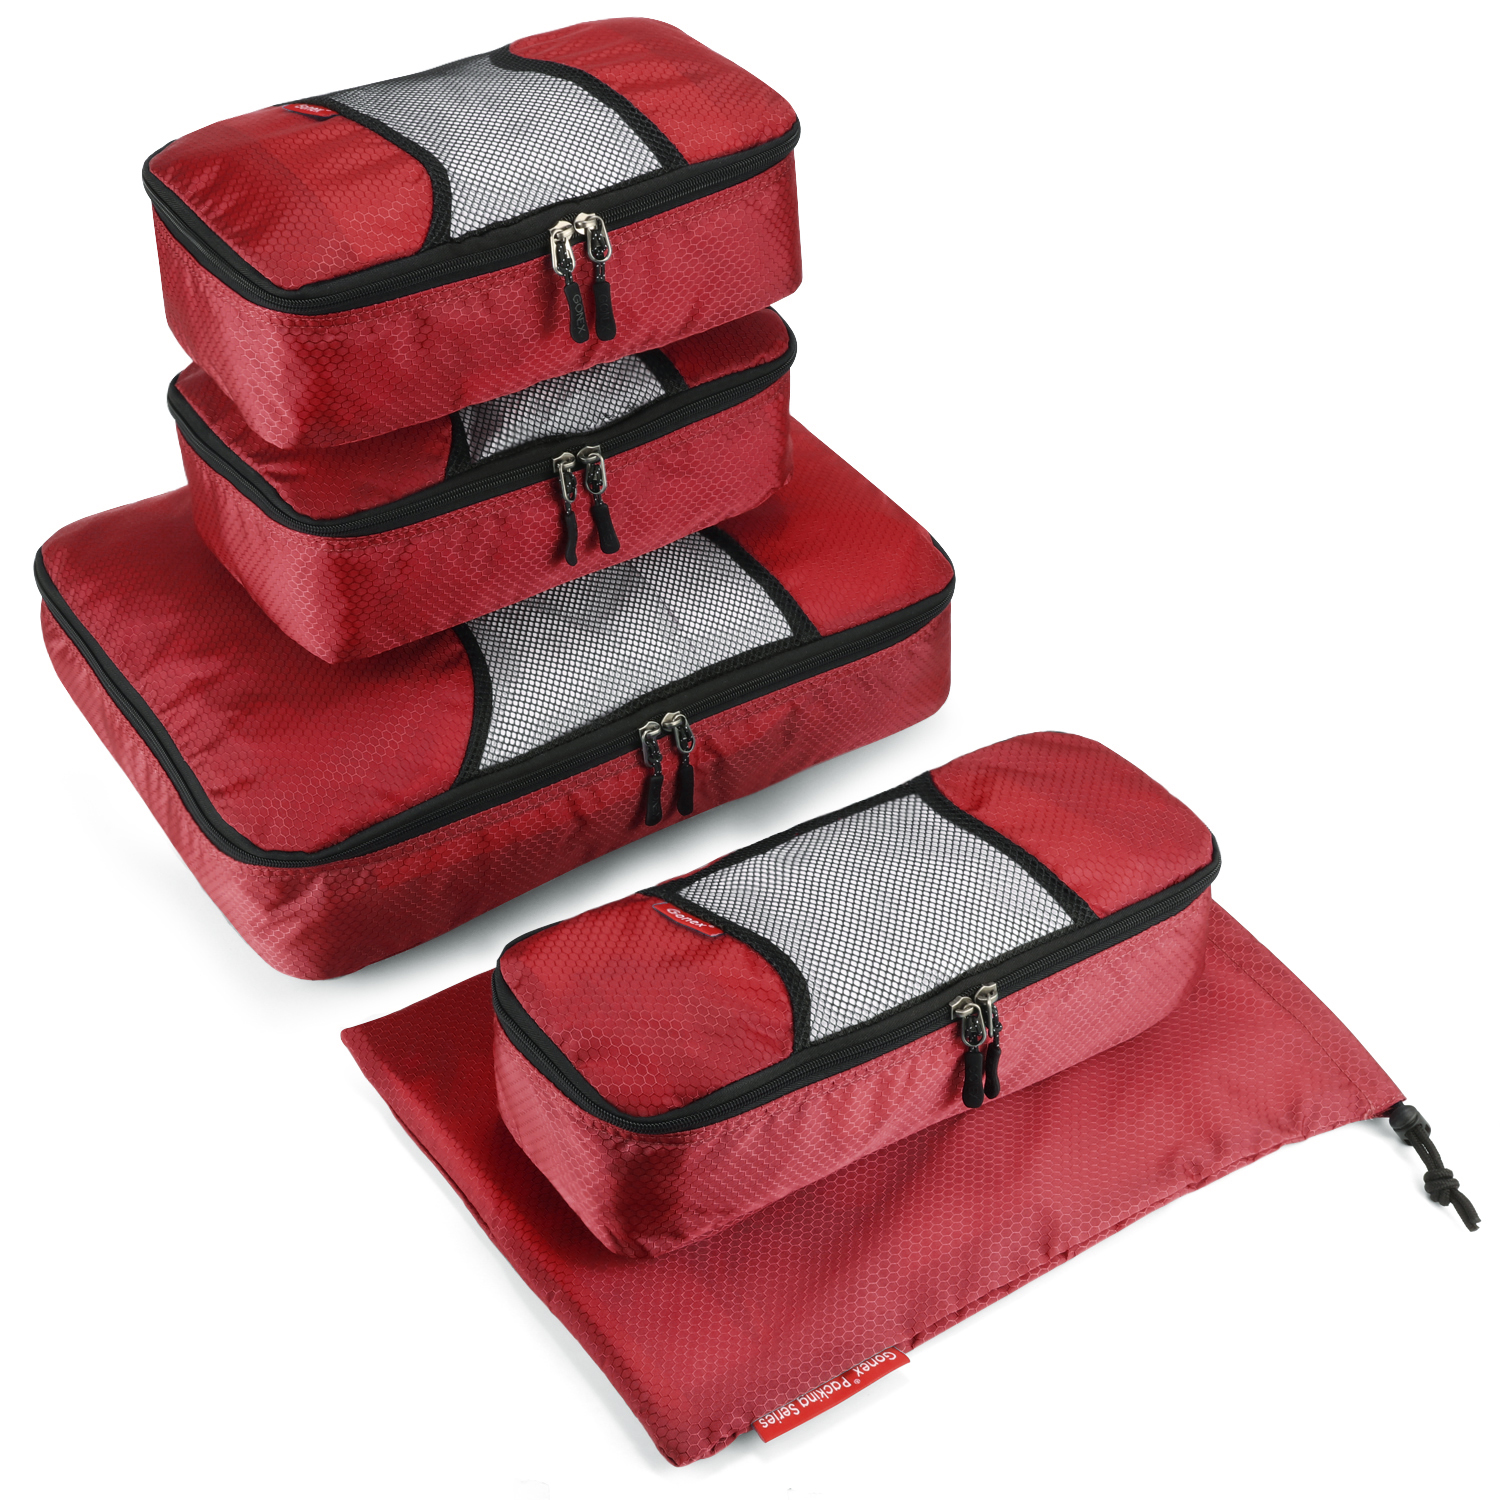 4 Set Packing Cubes Travel Luggage Packing Organizers Llama Lying On The Grass